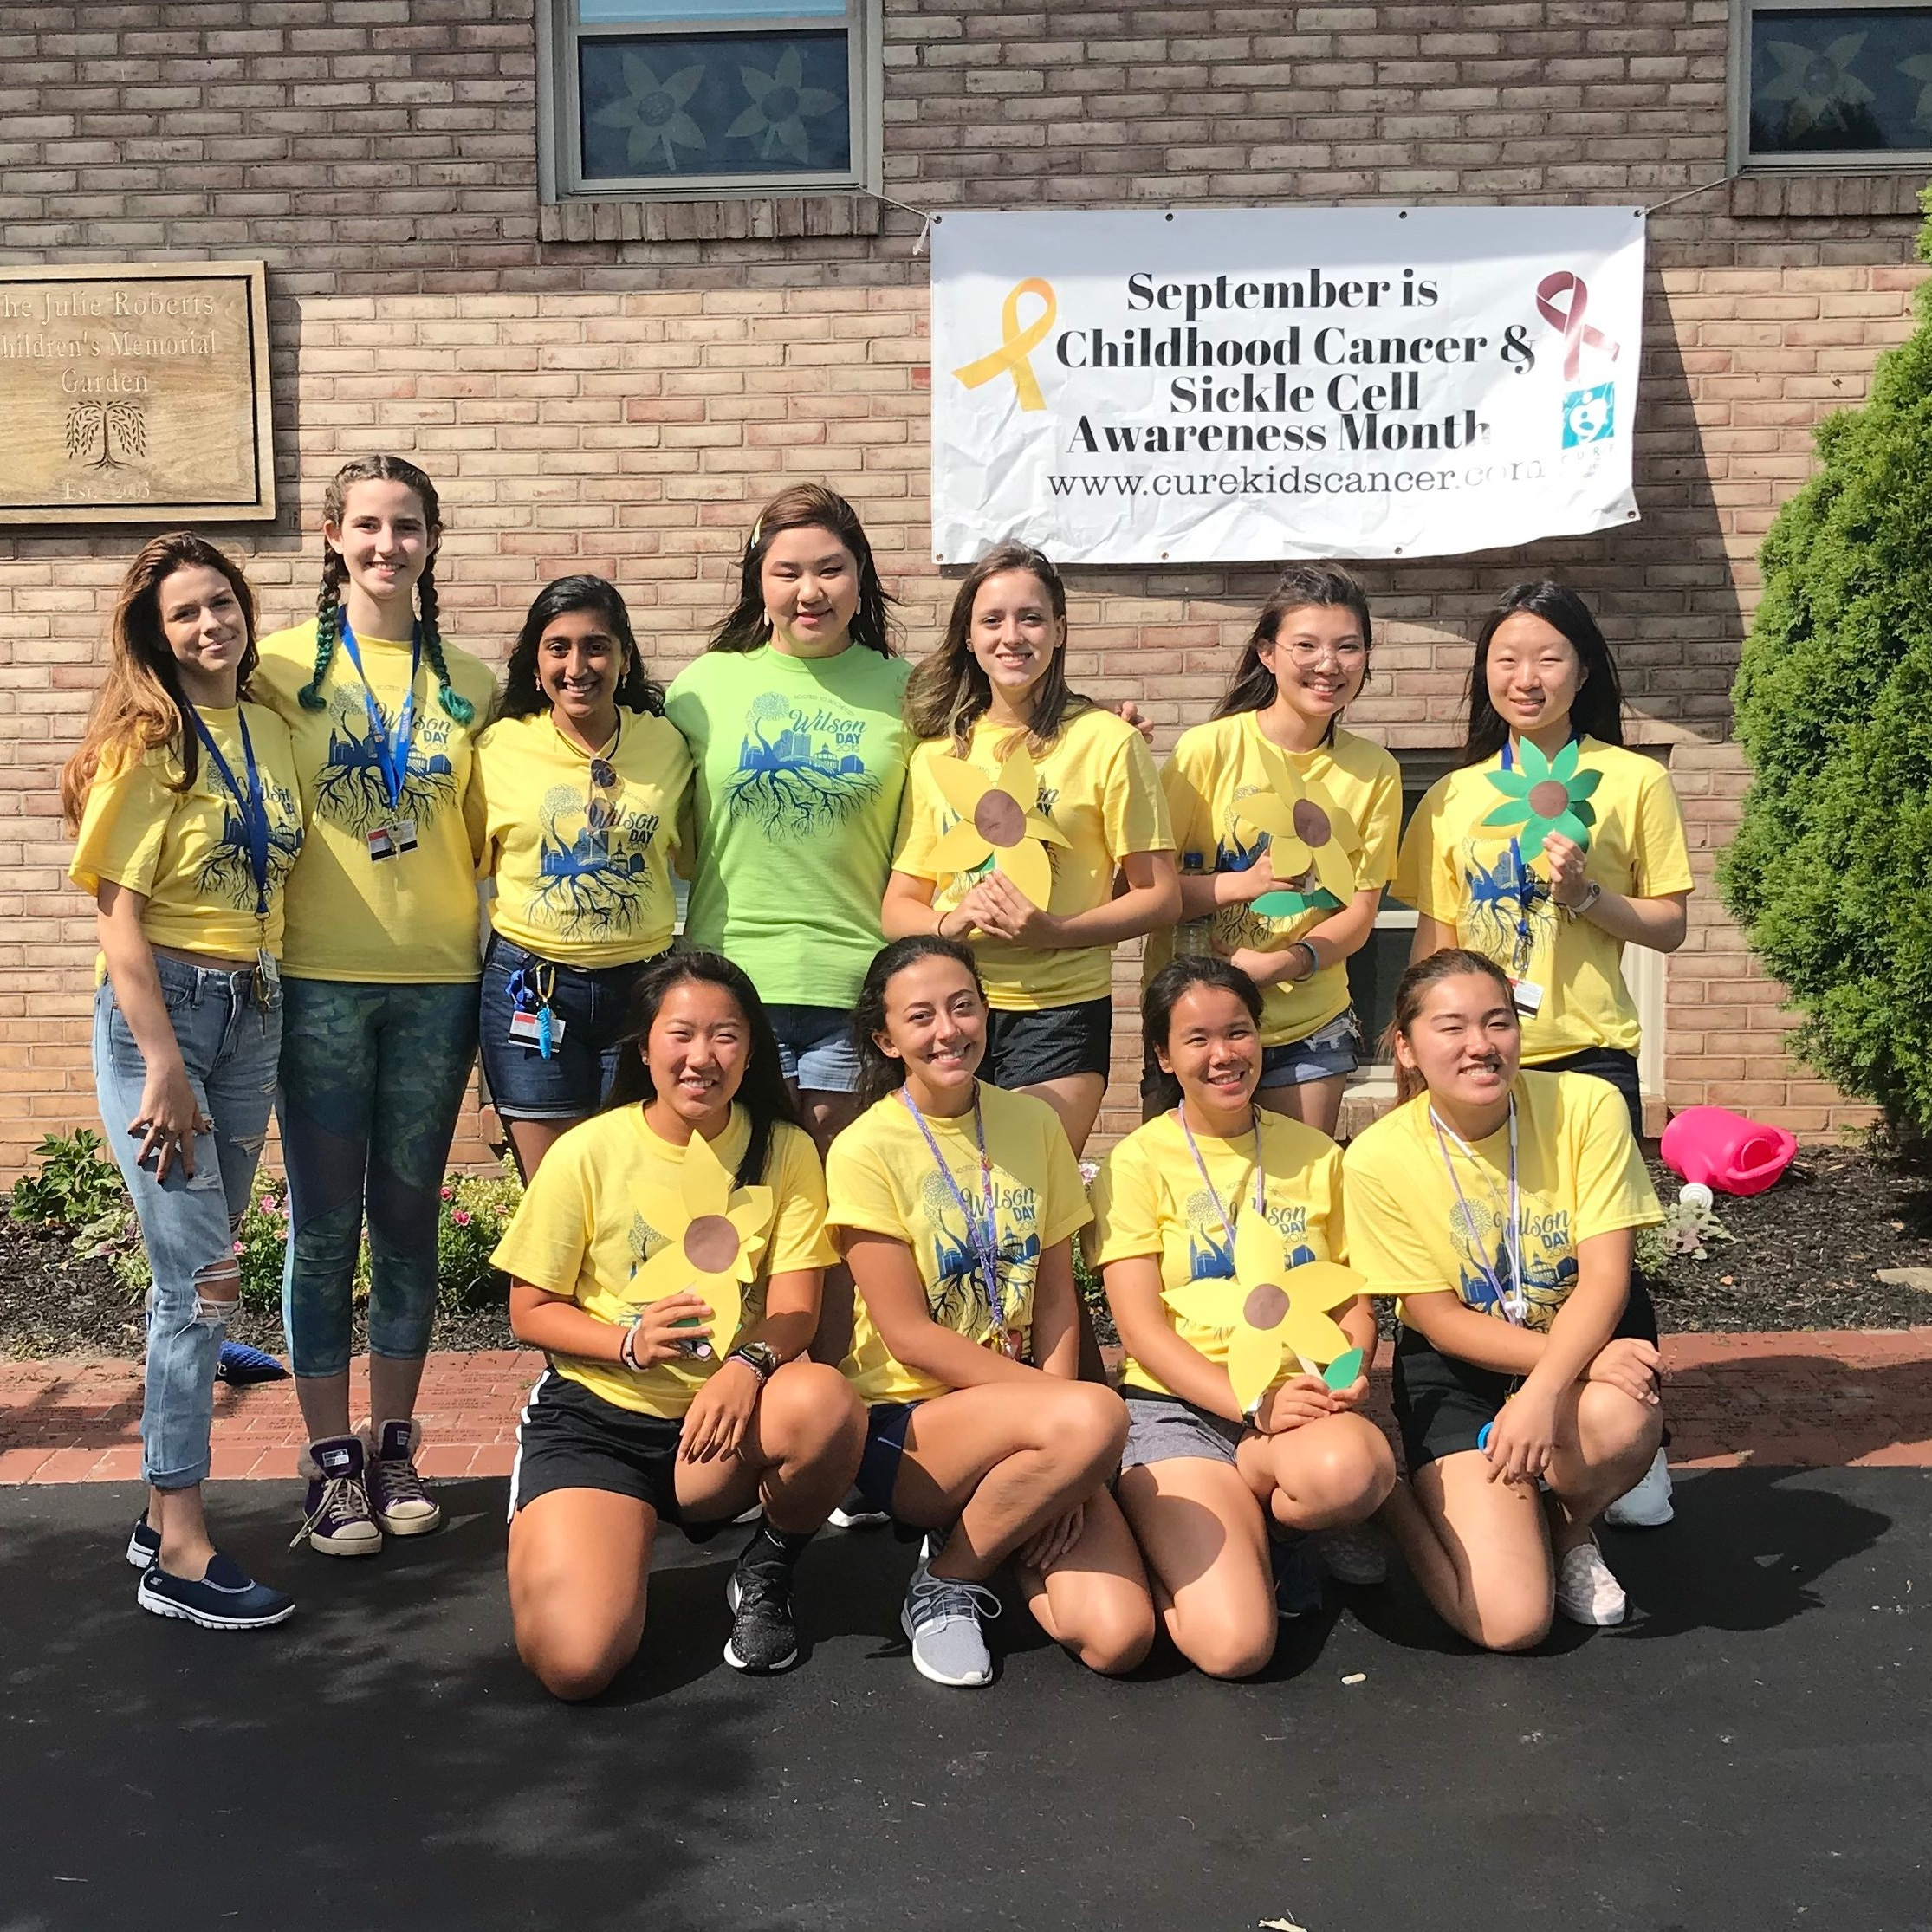 U of R's Wilson Day volunteers really worked hard to get us ready for September which is Childhood Cancer Awareness Month! Thank you girls for all your help!